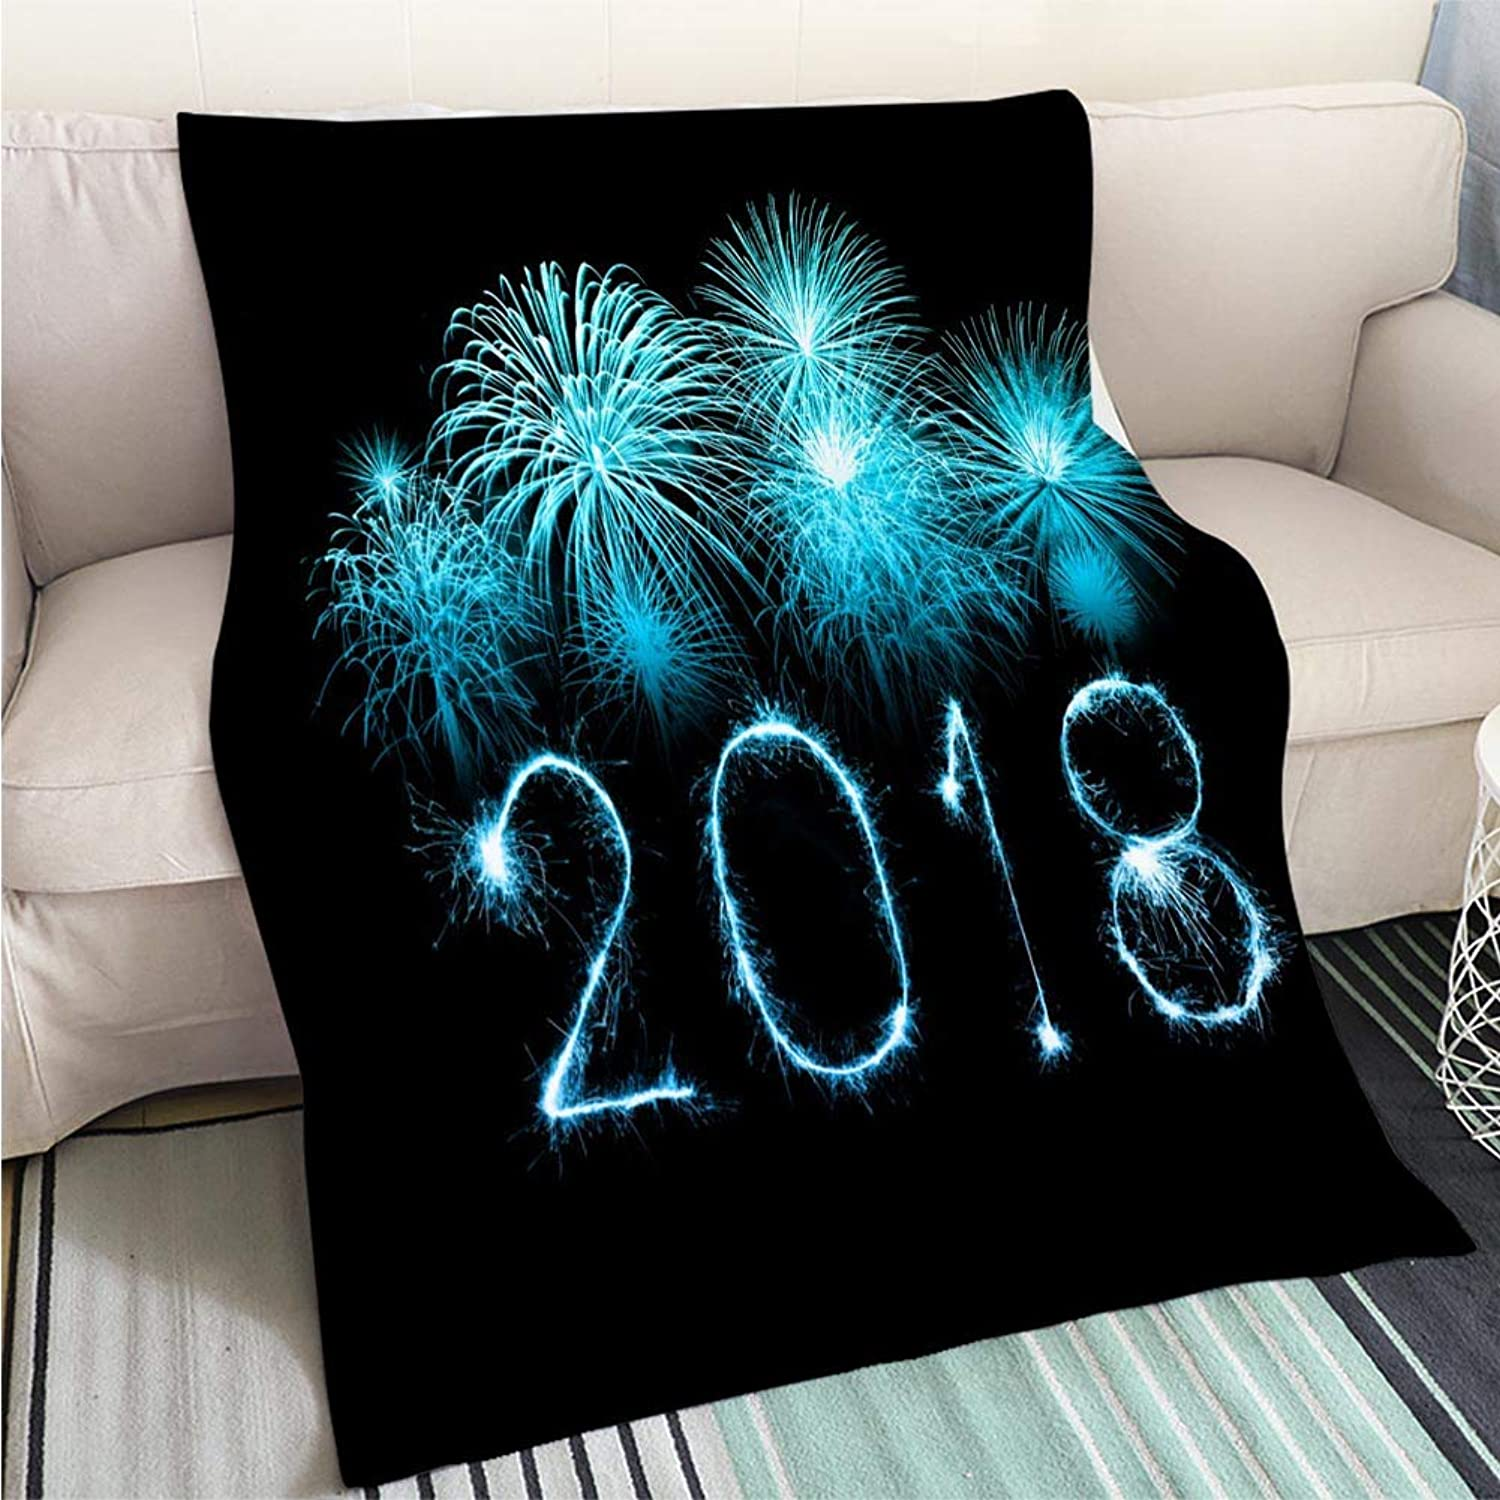 Home Digital Printing Thicken Blanket Happy New Year 2018 with Sparkle Firework at Night Perfect for Couch Sofa or Bed Cool Quilt